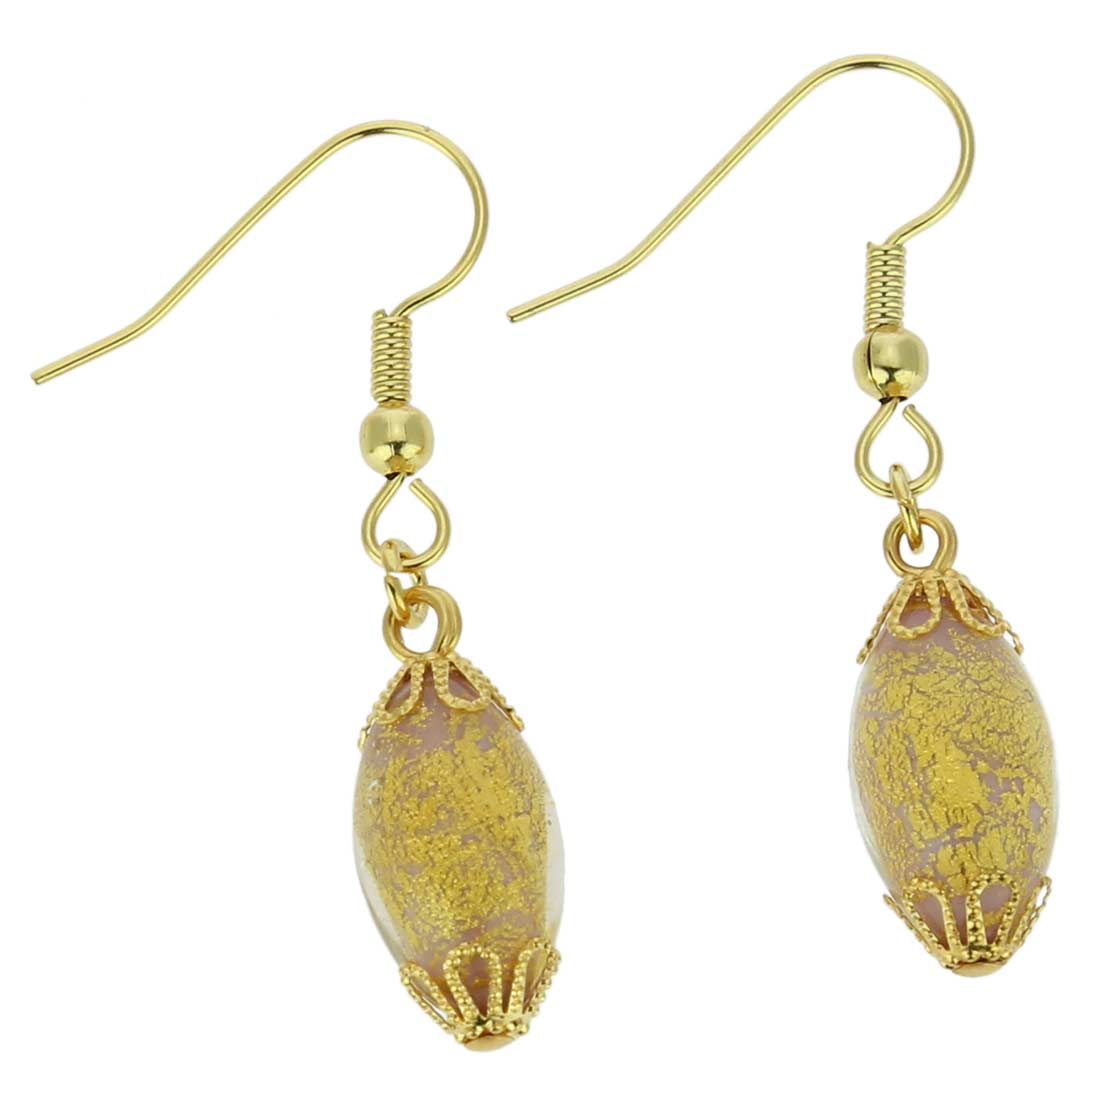 Ca D\'Oro Olives earrings - pink gold